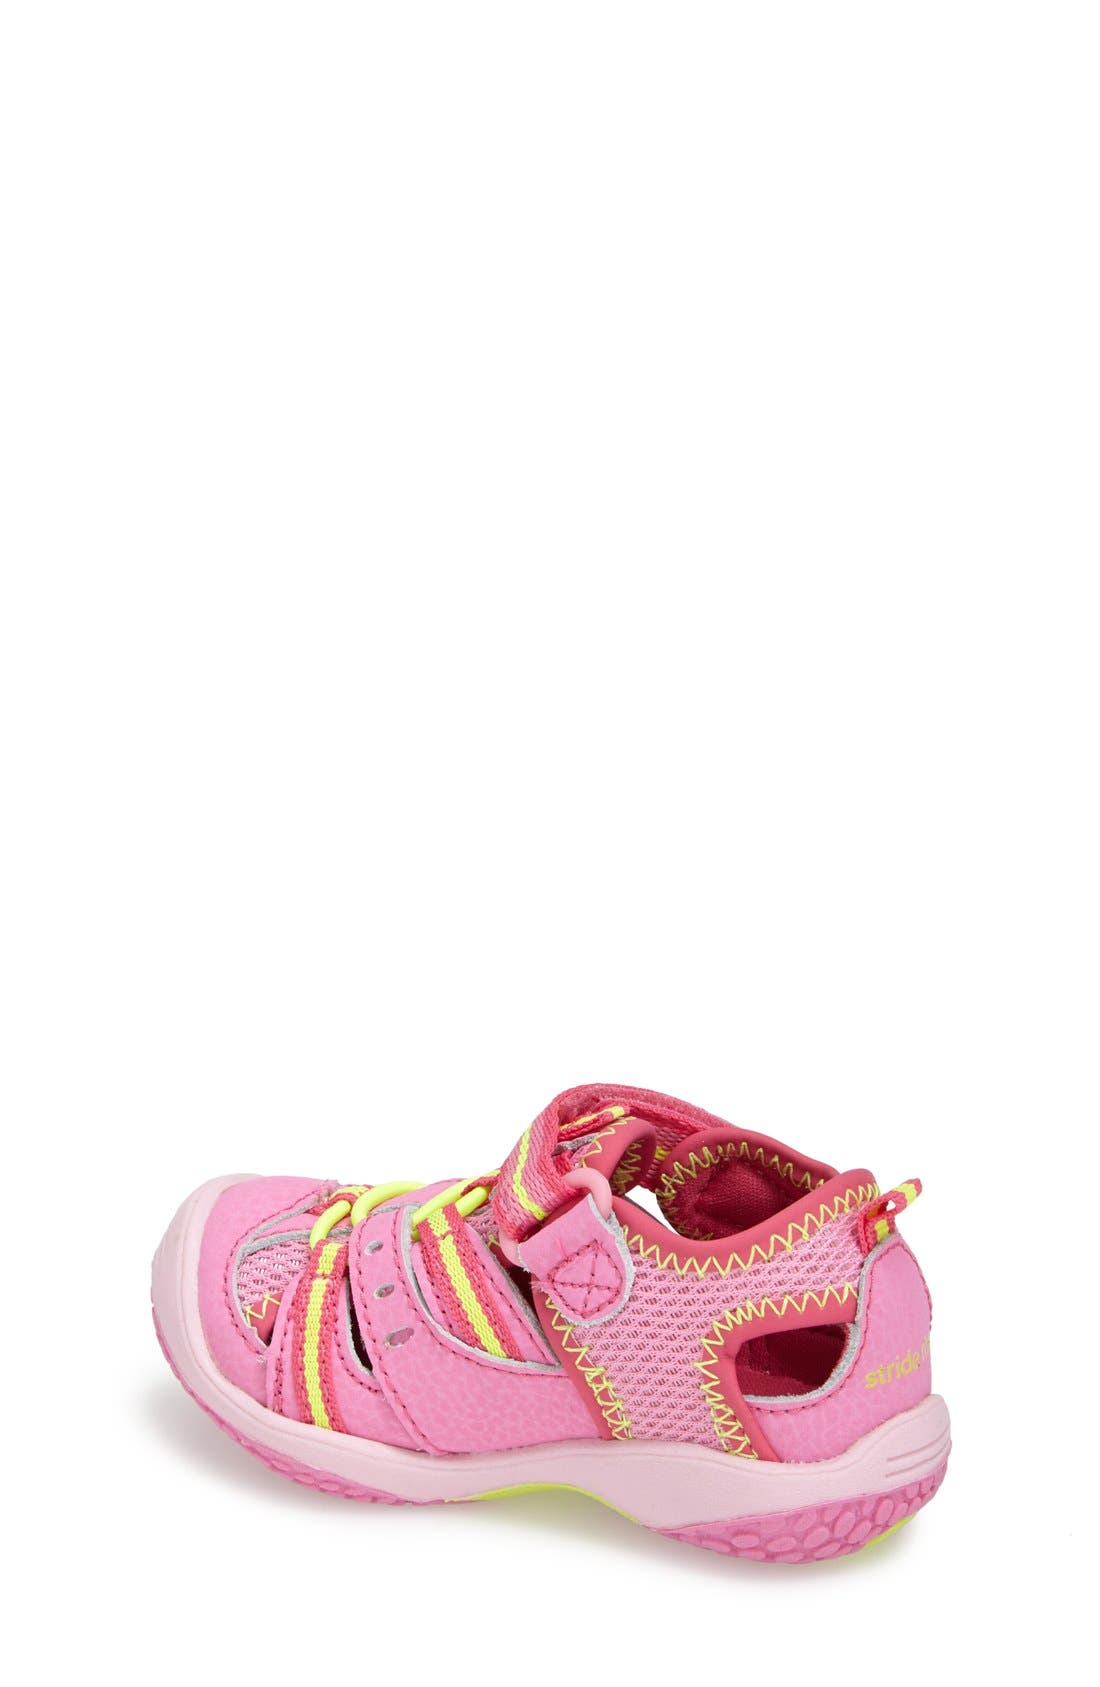 'Baby Petra' Sandal,                             Alternate thumbnail 6, color,                             650